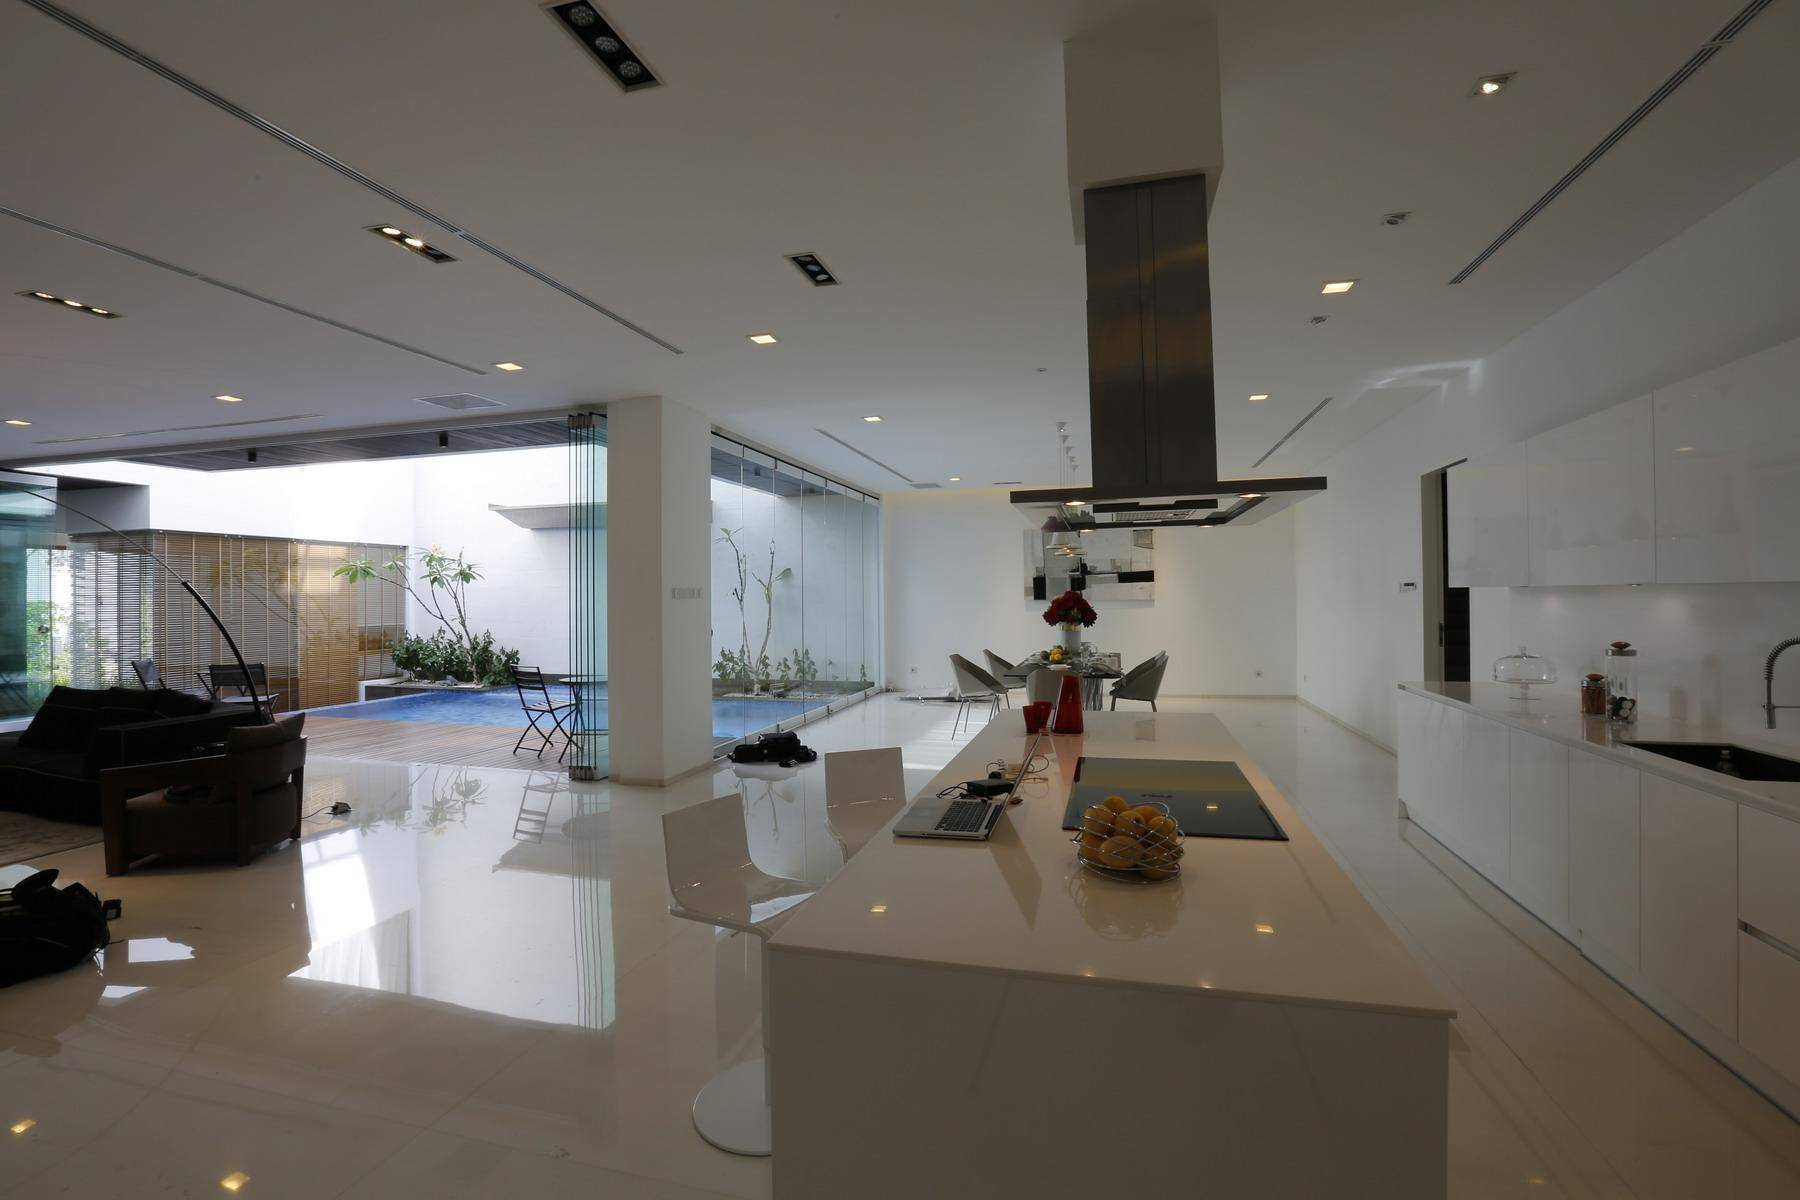 Julio Julianto The Minimal White House At Jimbaran Asri Bali, Indonesia Bali, Indonesia Pantry Modern  5916